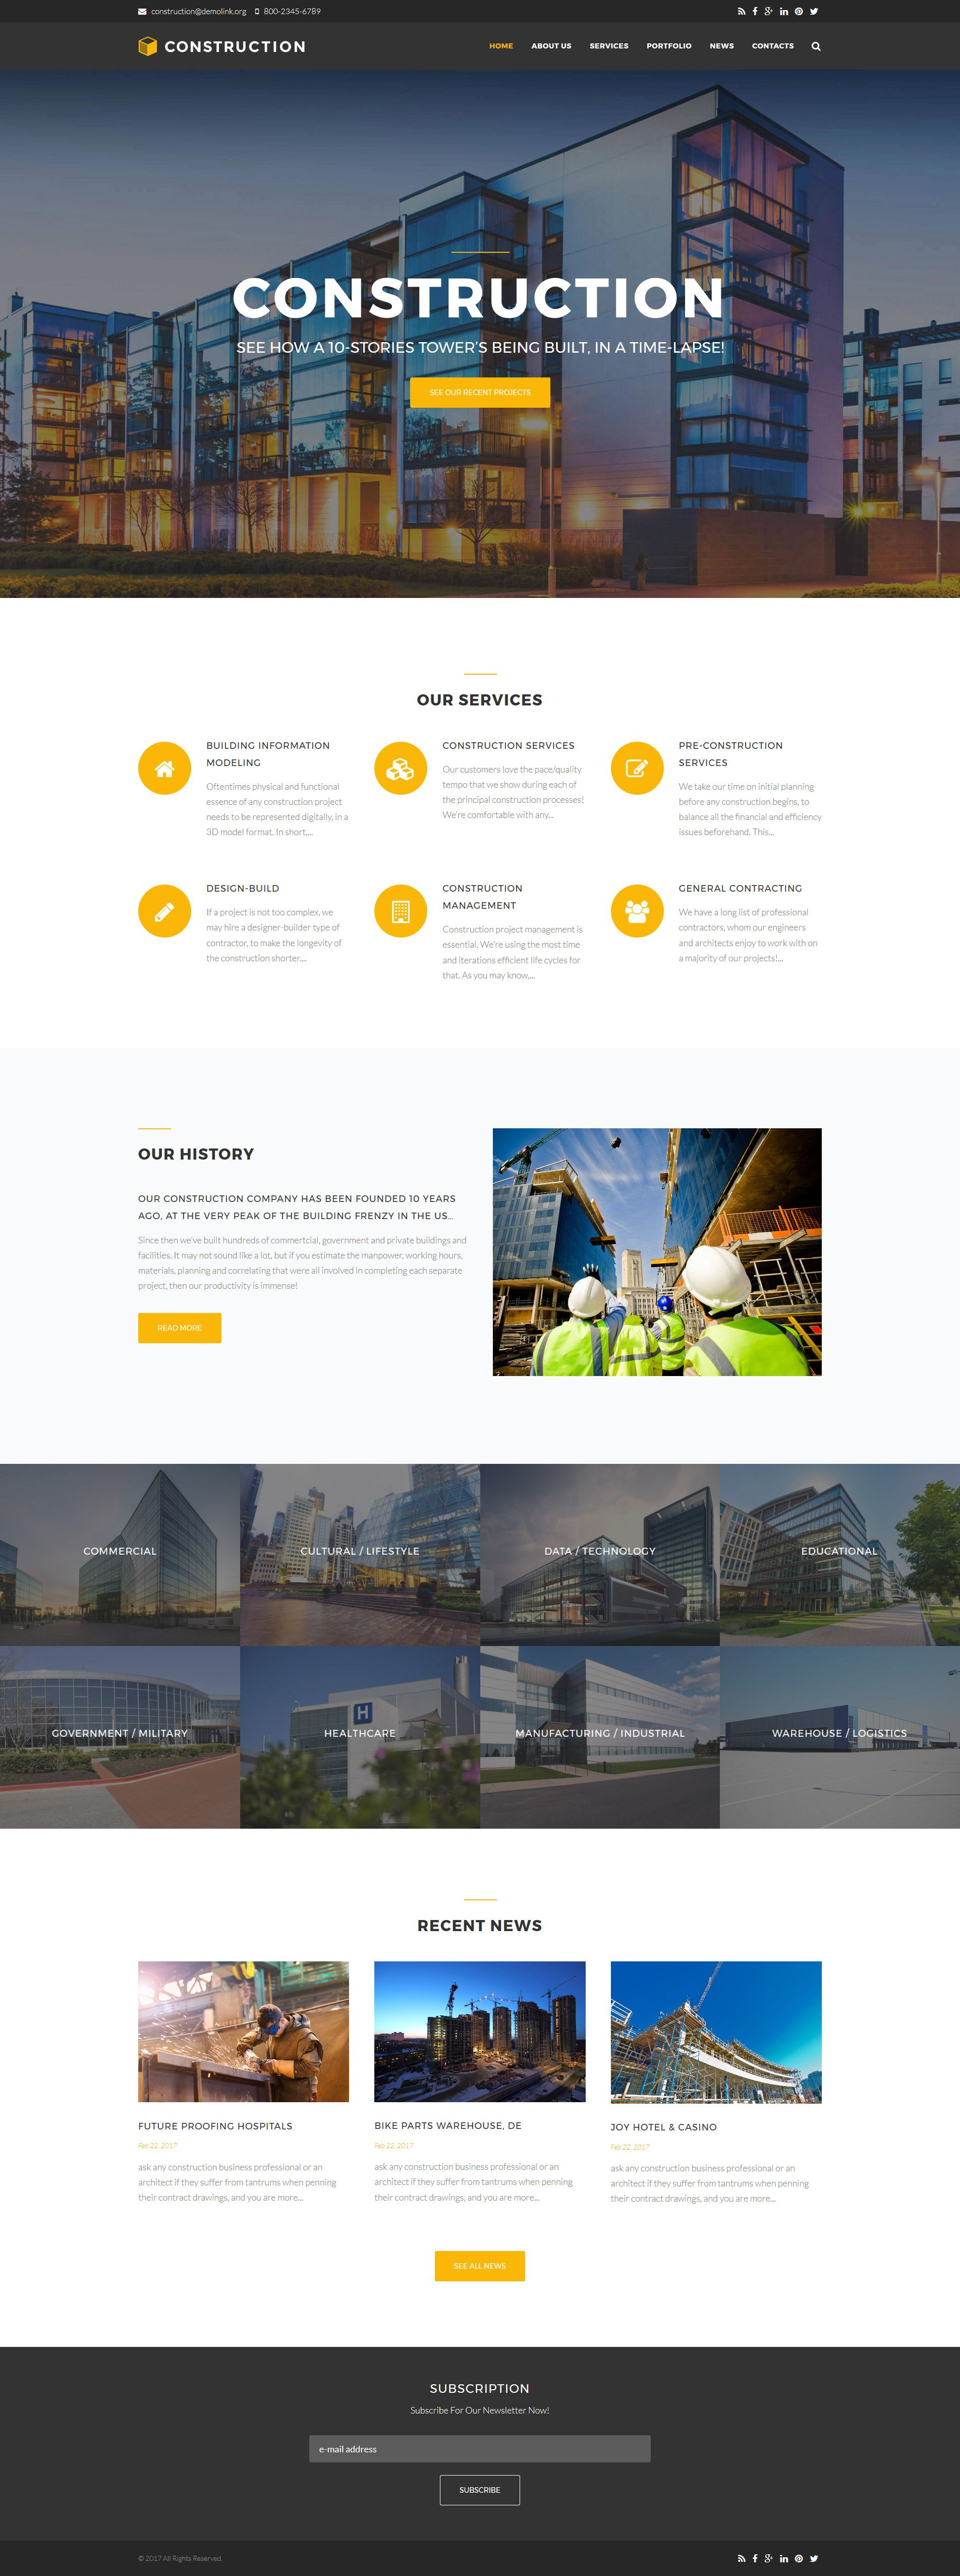 Construction Company Premium Drupal Template | New Website Templates on small organizing ideas, small manufacturing ideas, 2 bedroom house layout ideas, reception area layout ideas, small interior design ideas, small inventory control ideas, office layout ideas, conference room layout ideas, workshop layout ideas, small painting ideas, shipping and receiving layout ideas, break room layout ideas, laundry room layout ideas, living room layout ideas, shelving display ideas, small warehouse home, kitchen layout ideas,